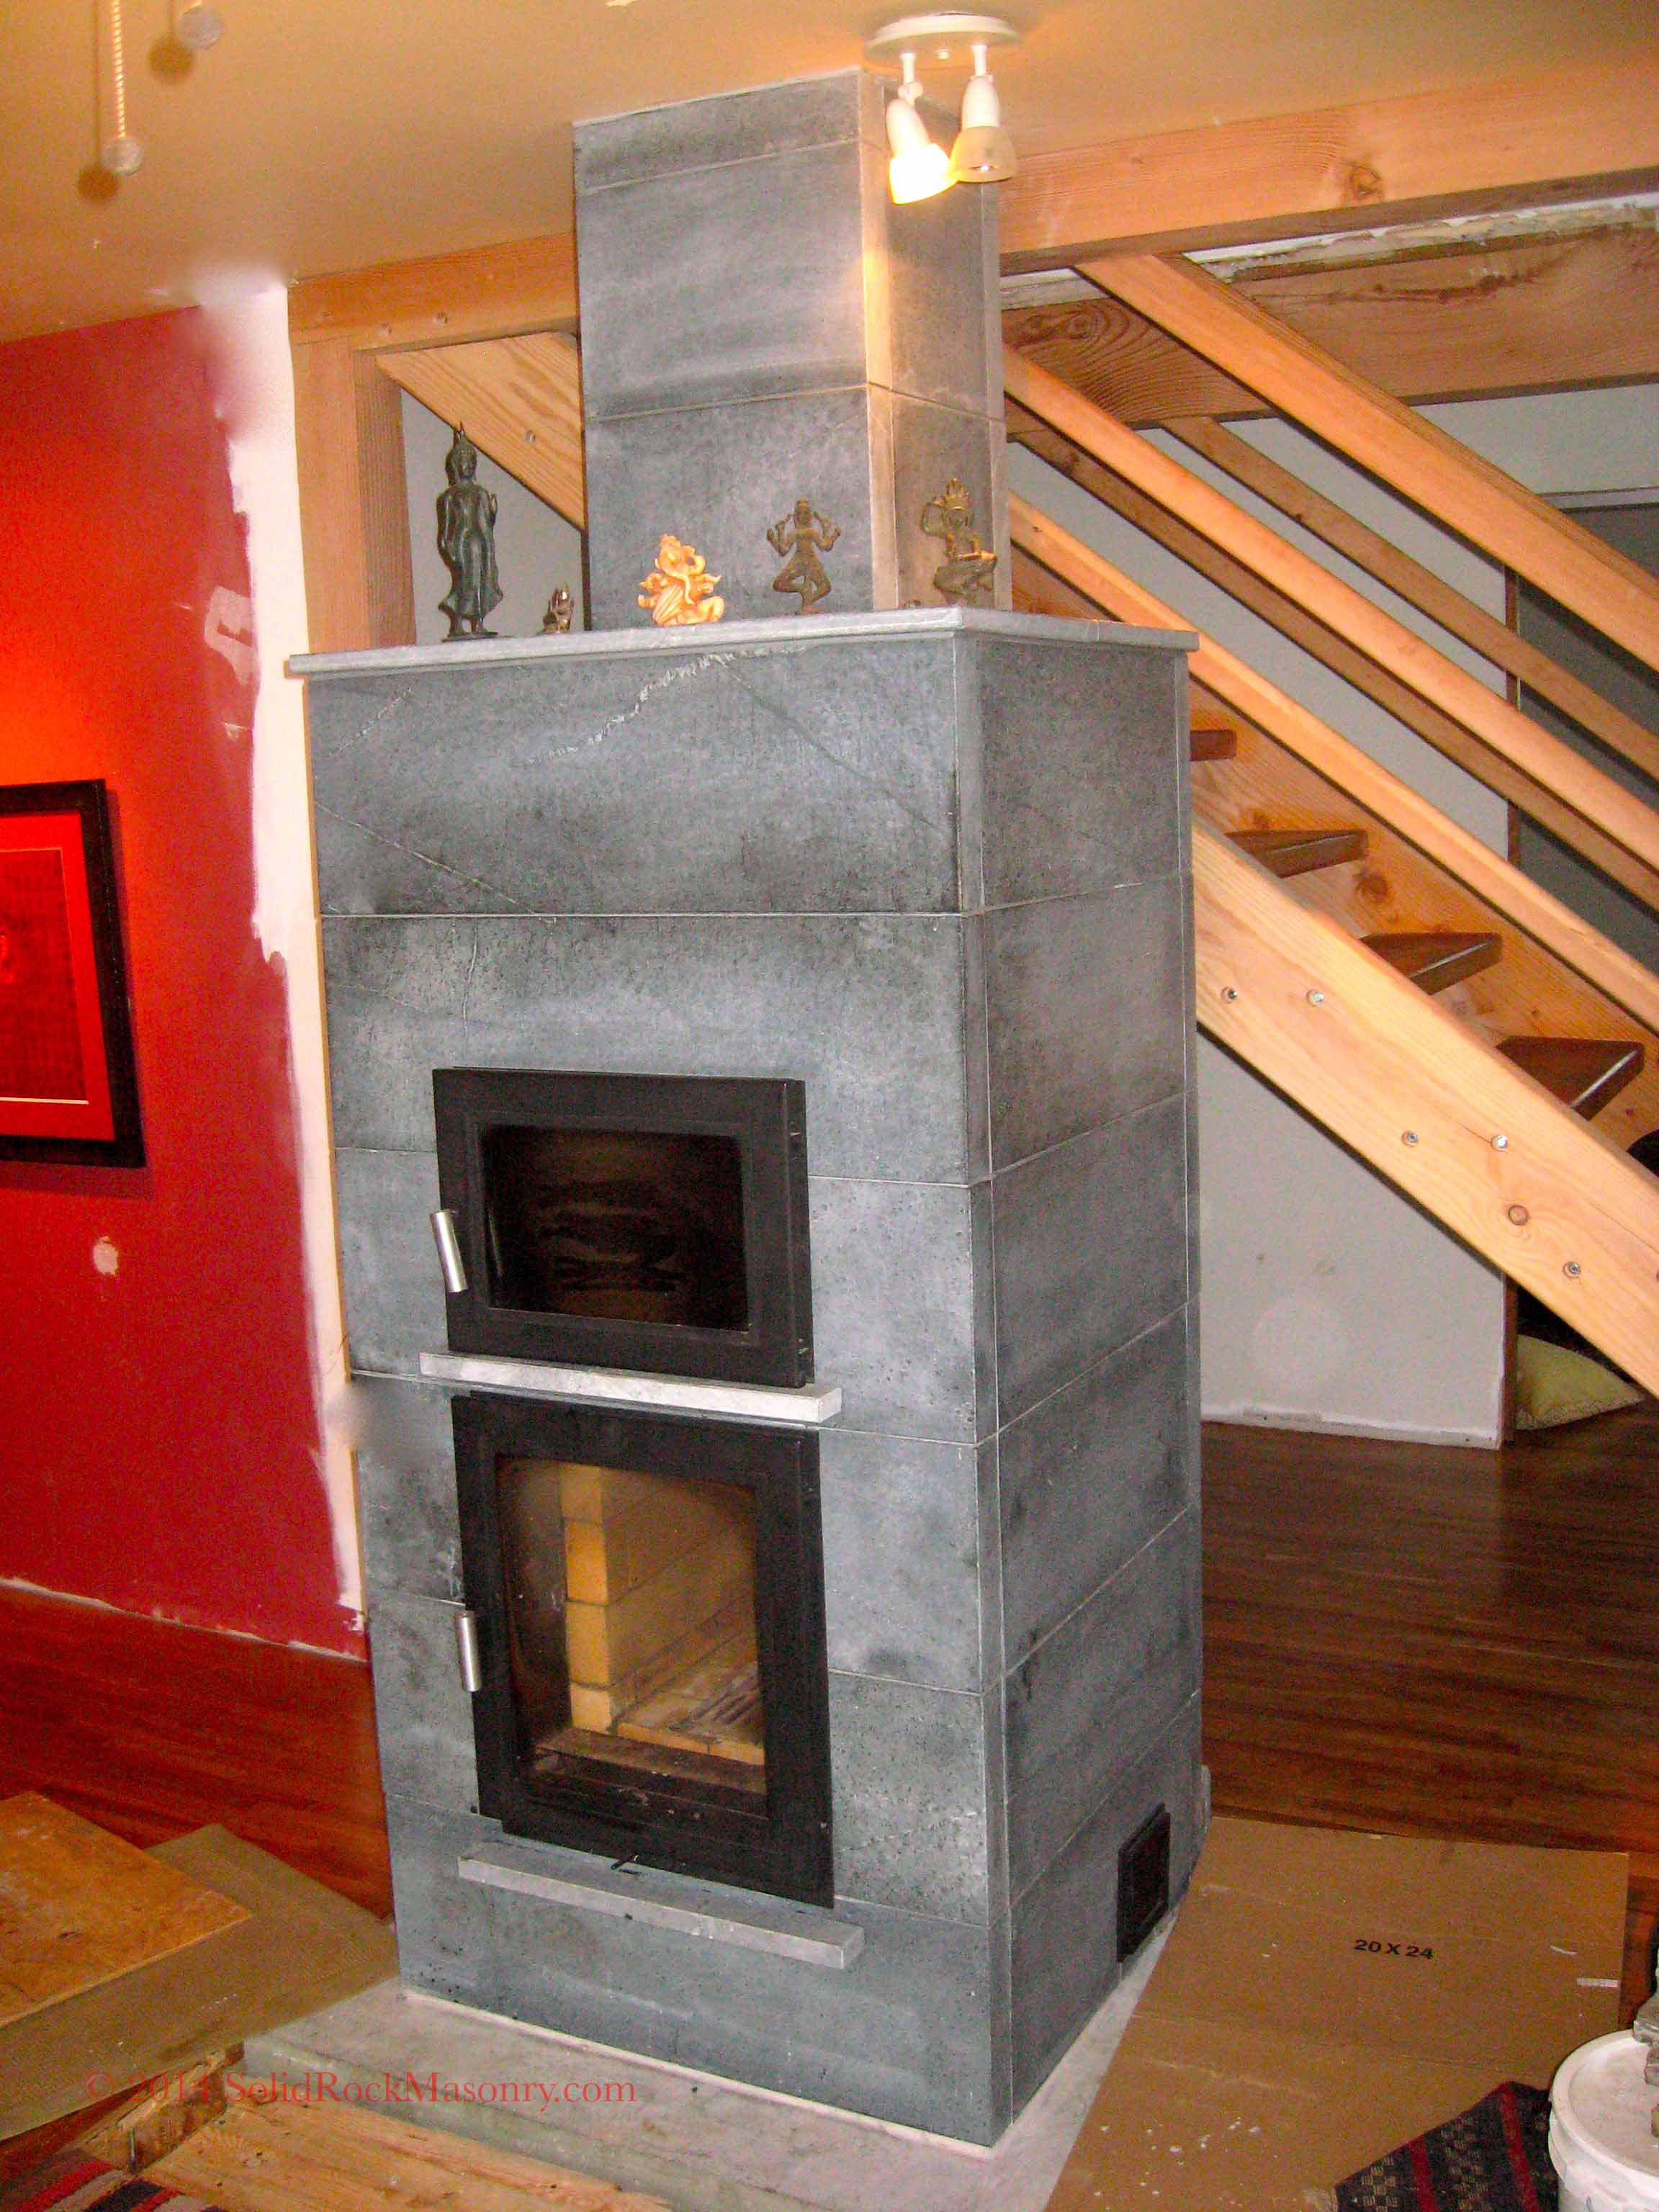 res fireplace r photo high room firebox exacta